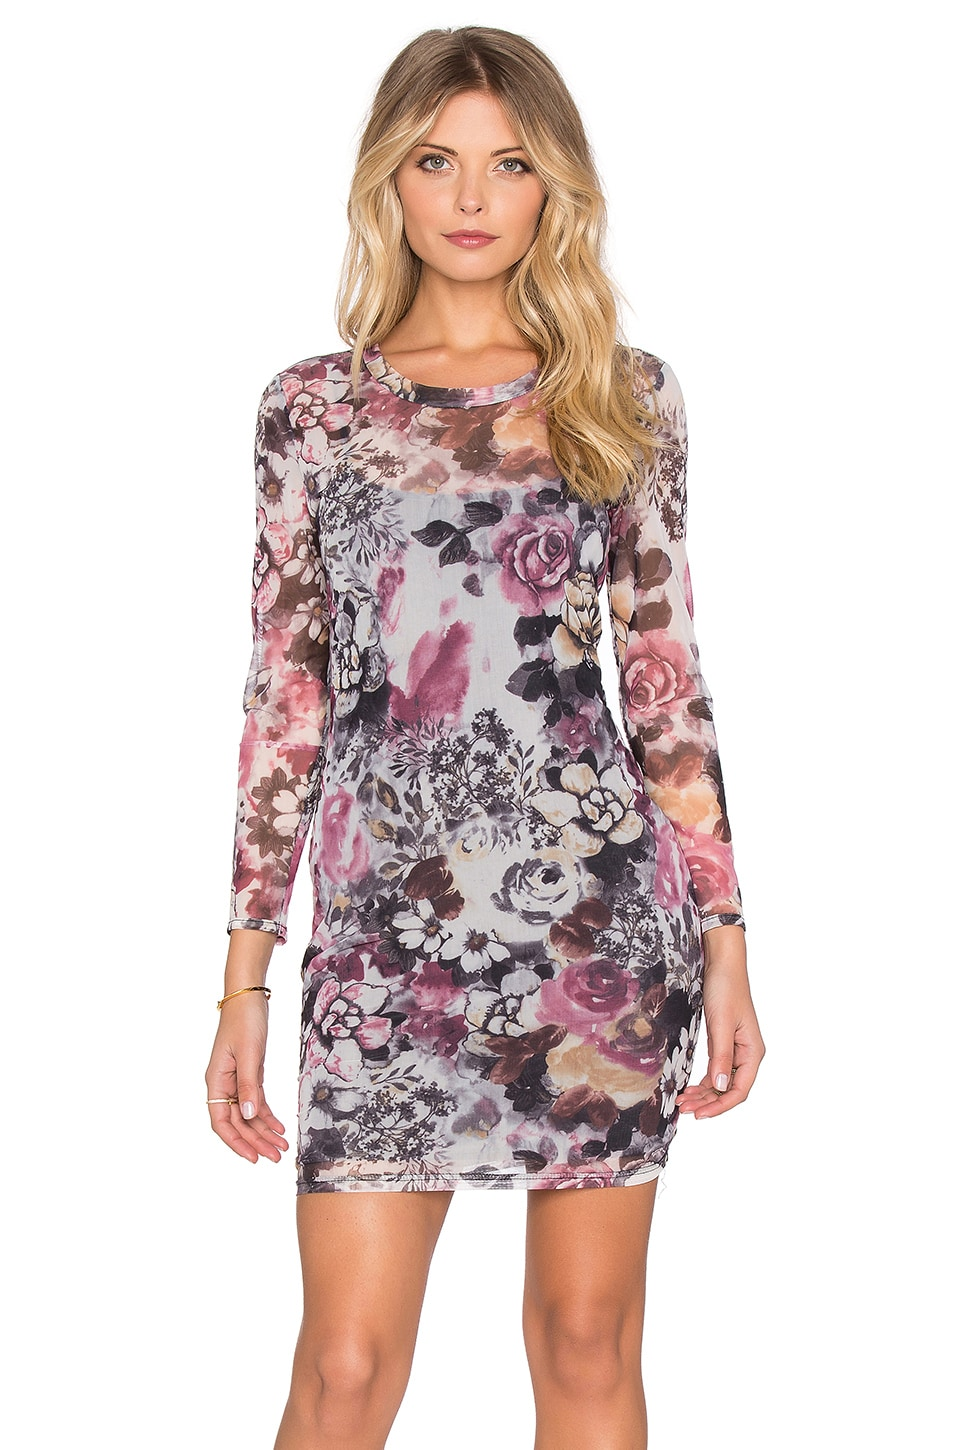 Lucca Couture Floral Mesh Longsleeve Bodycon Dress in Navy & Pink Floral